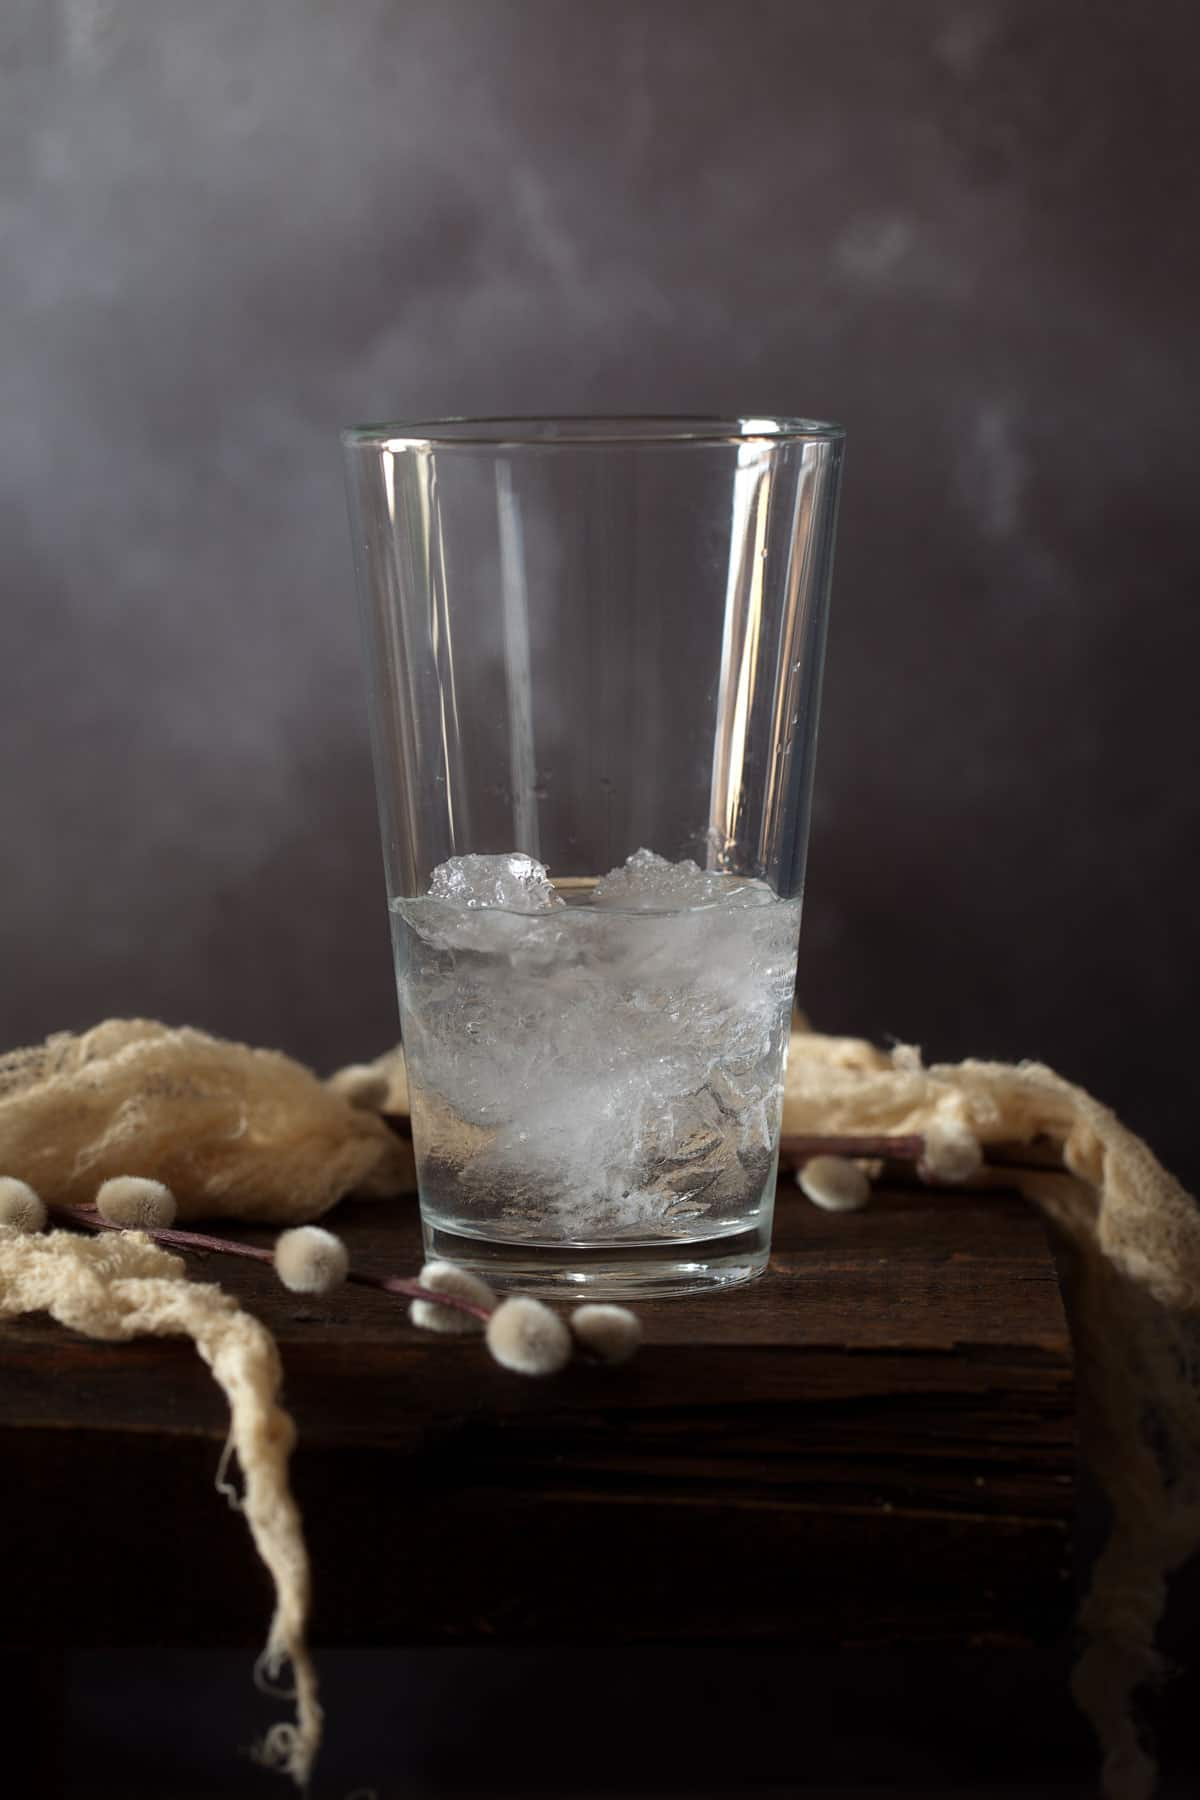 Ingredients for a cocktail in a glass filled with ice